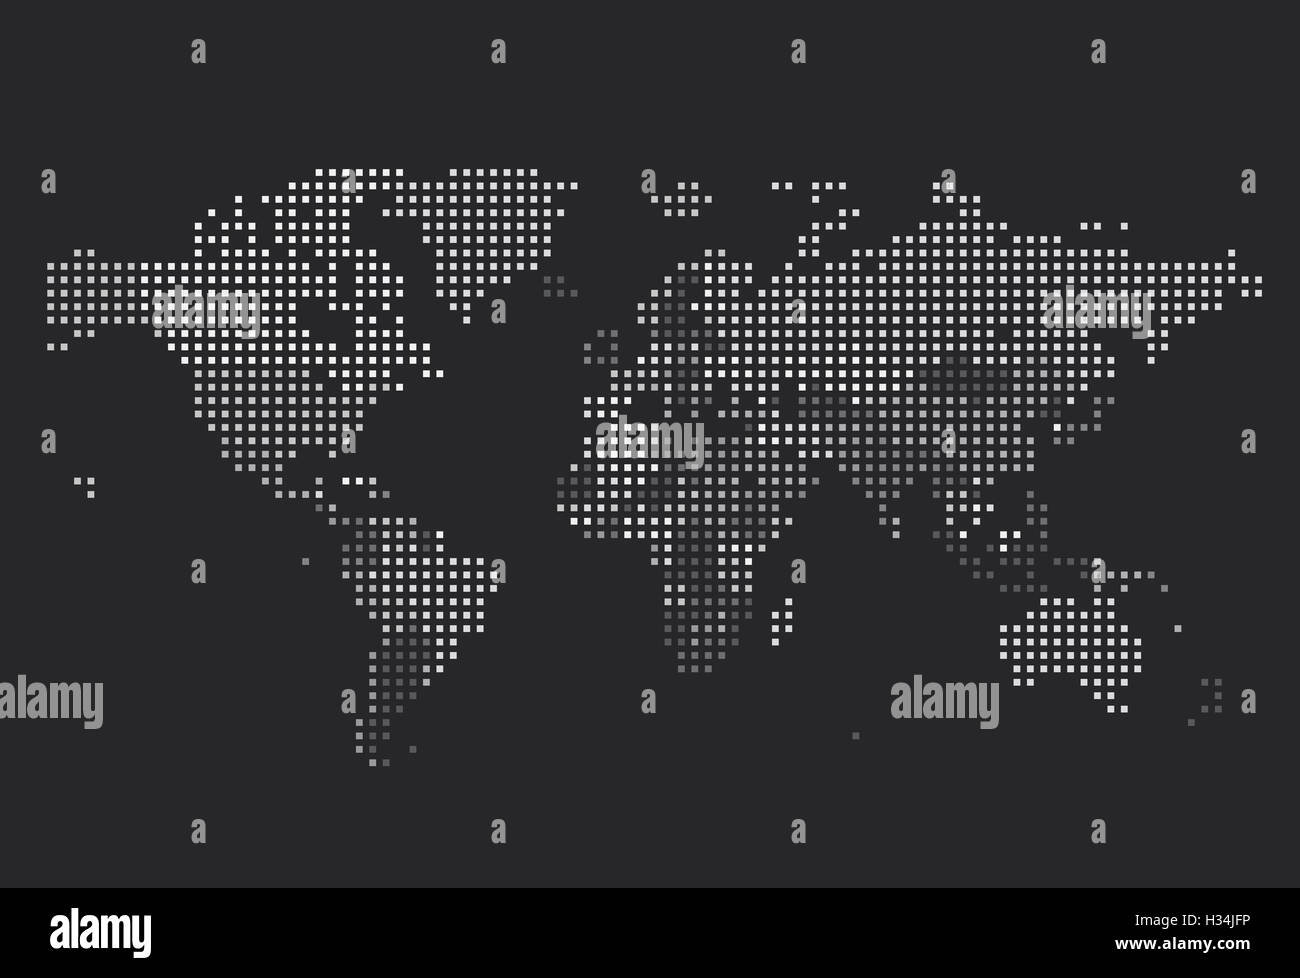 World map black and white countries stock photos world map black dotted world map of square dots on dark background stock image gumiabroncs Gallery